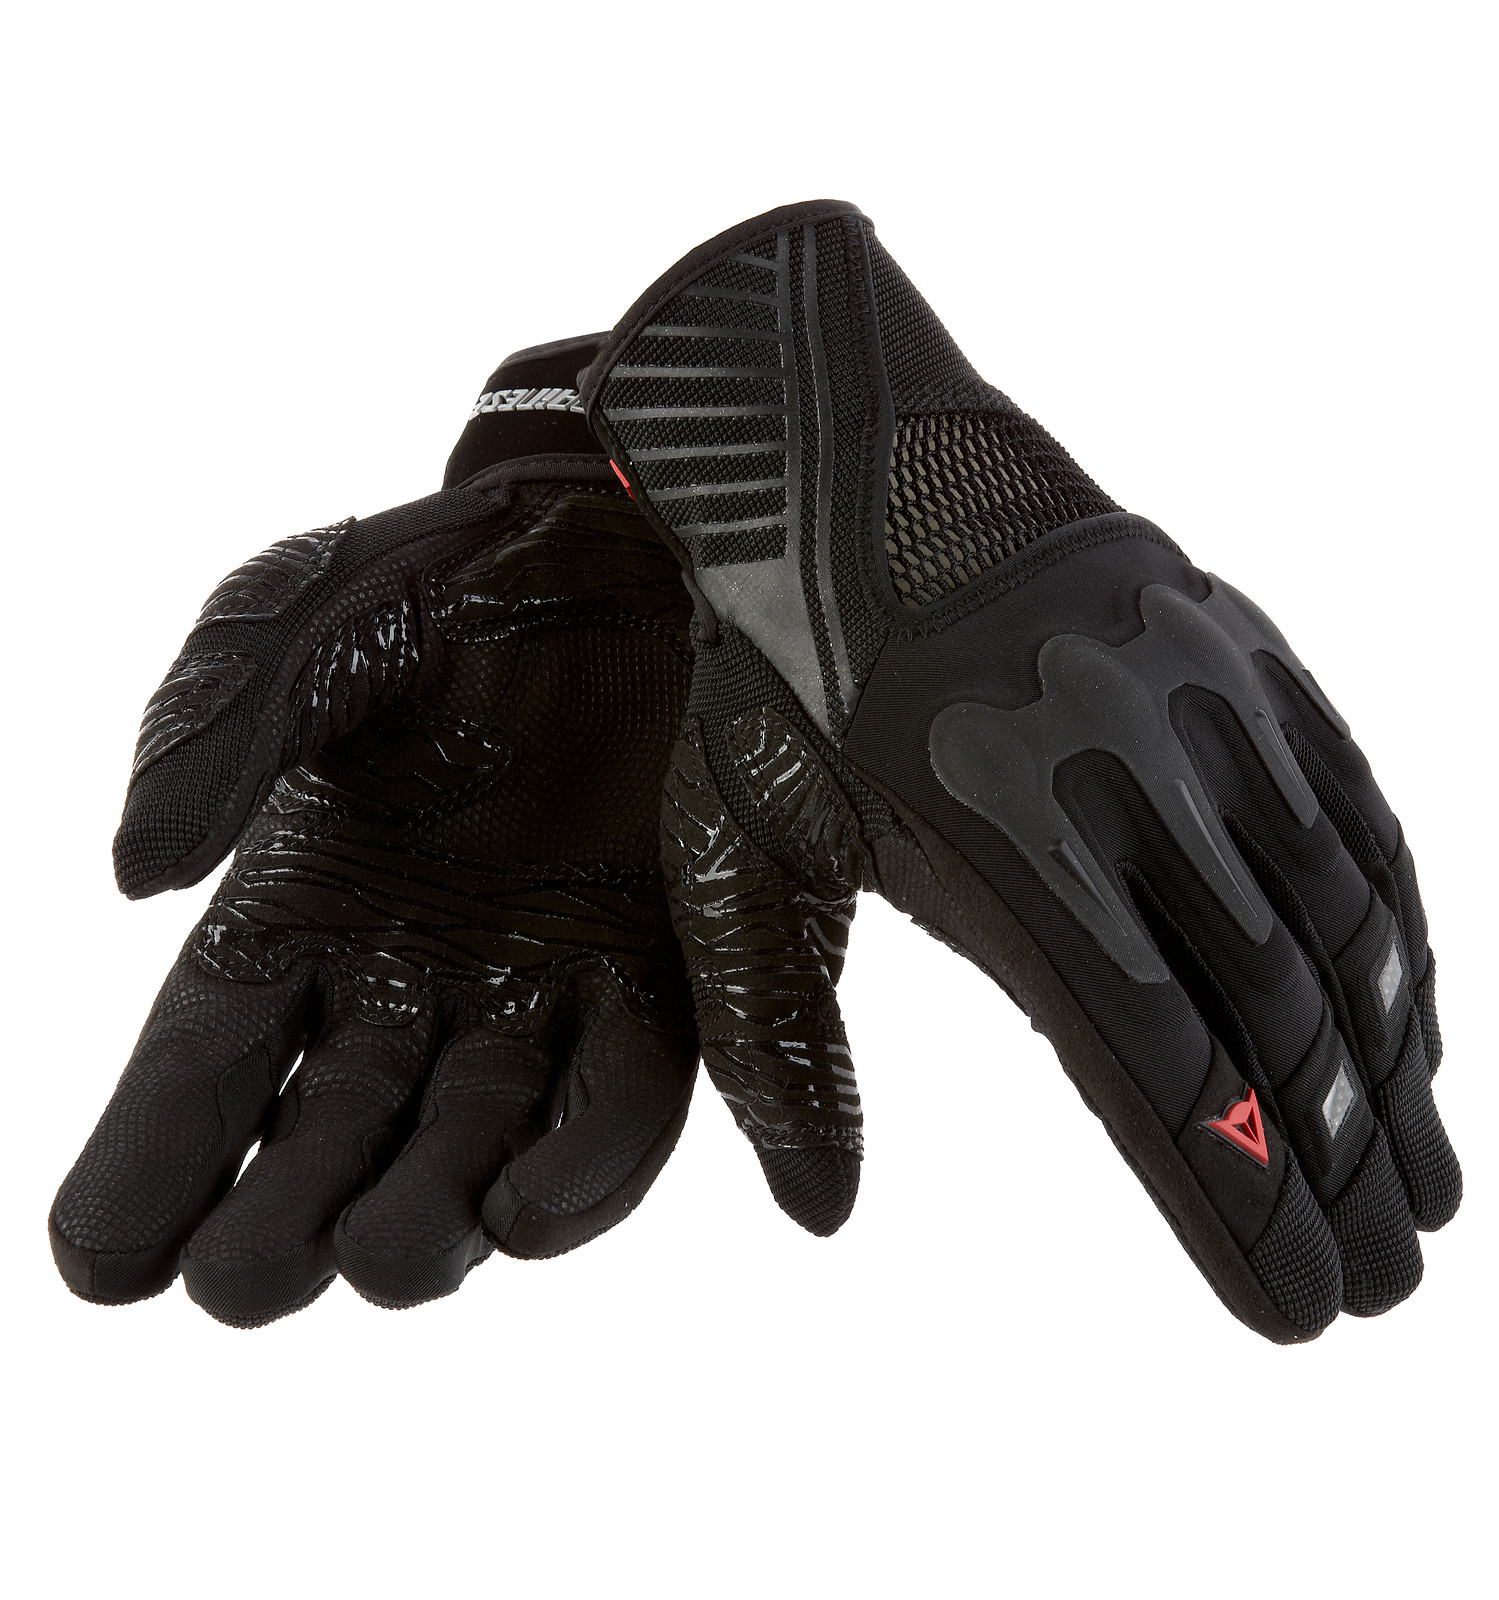 Dainese Atrax Long Gloves Atrax Gloves Long